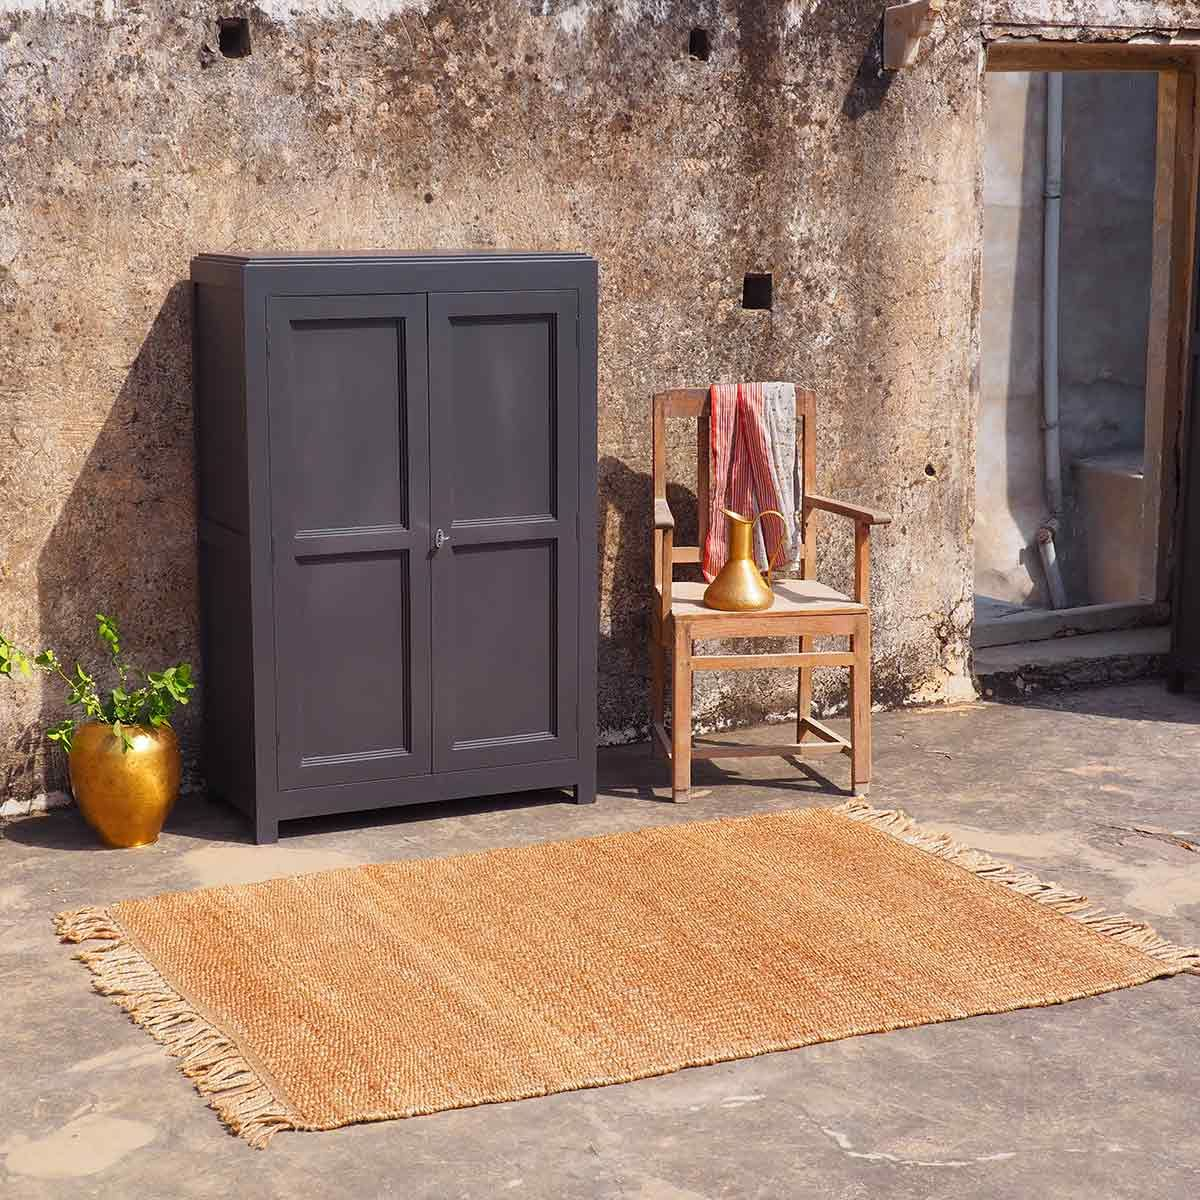 Tapis rectangulaire en jute naturel tissé main franges PM